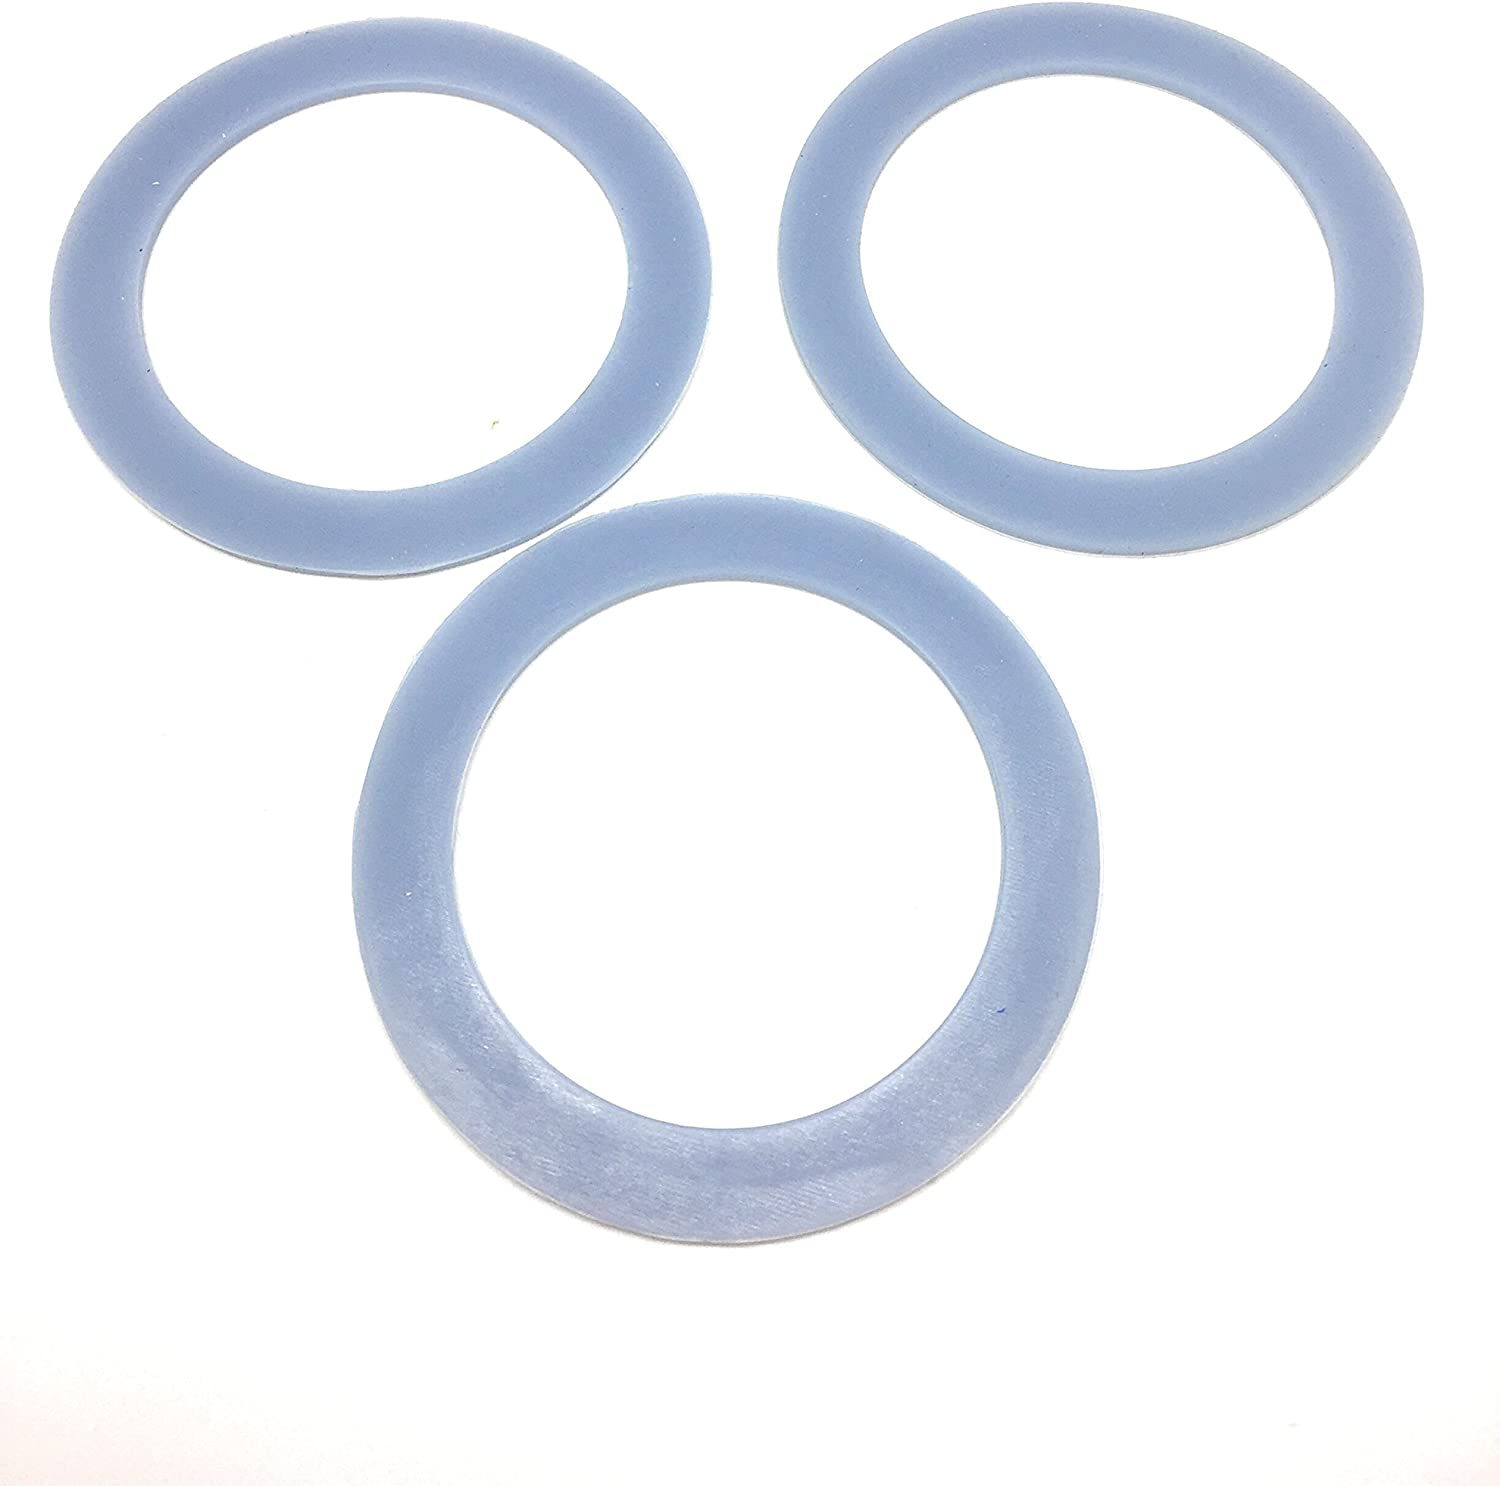 3 Pack Blender Sealing Gaskets Fits Cuisinart Cutting Assembly SPB-456-2 and SPB-456-2B